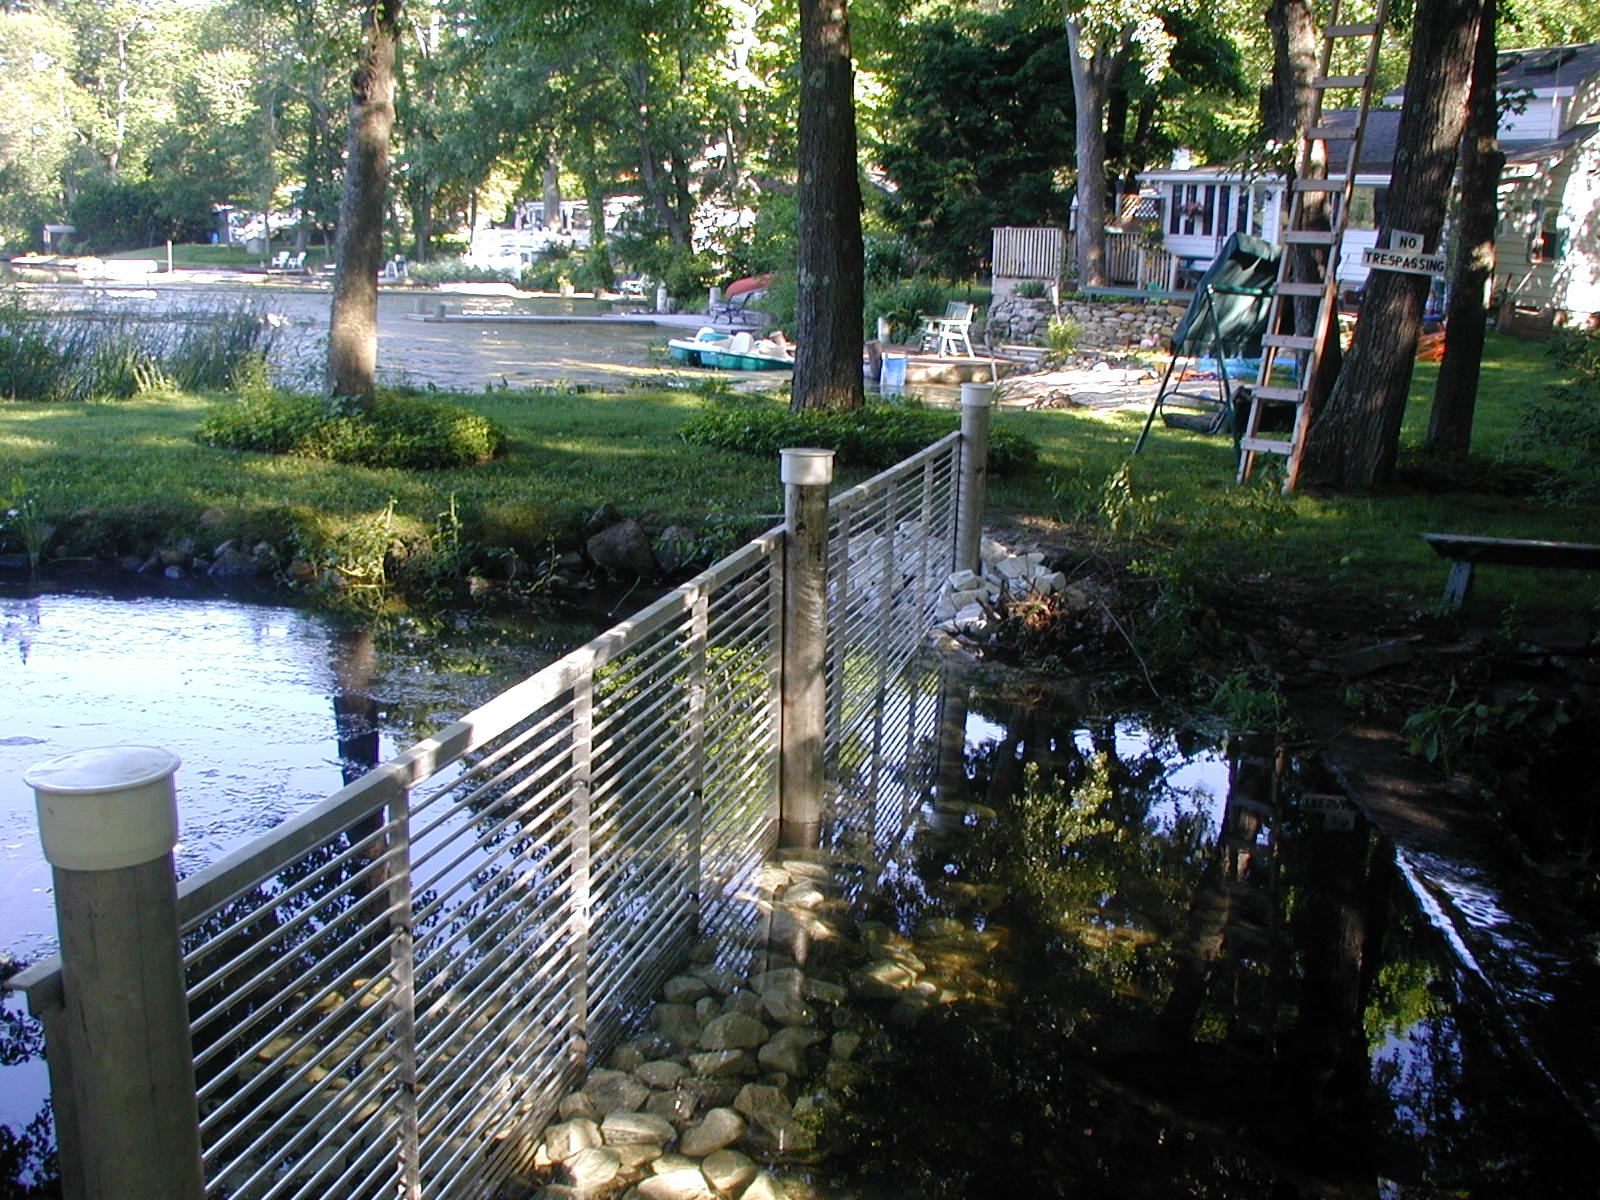 Completed carp fence along the water